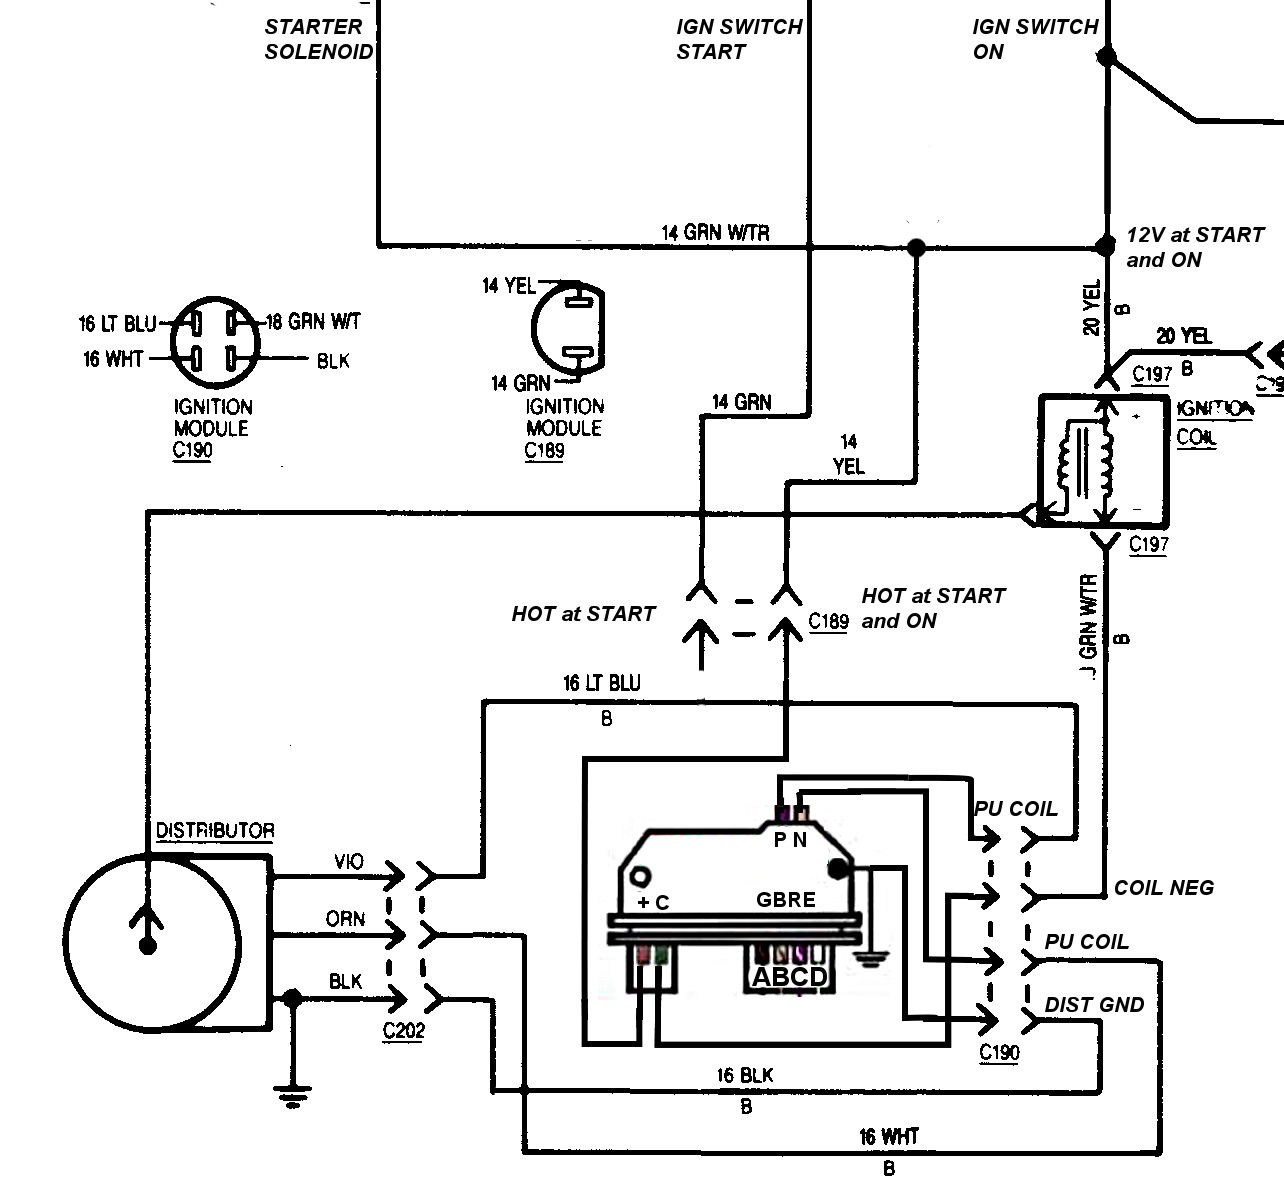 TBI+Wiring+1 simple ignition wiring diagram john deere wiring schematic \u2022 free Chevy Truck Wiring Diagram at bayanpartner.co